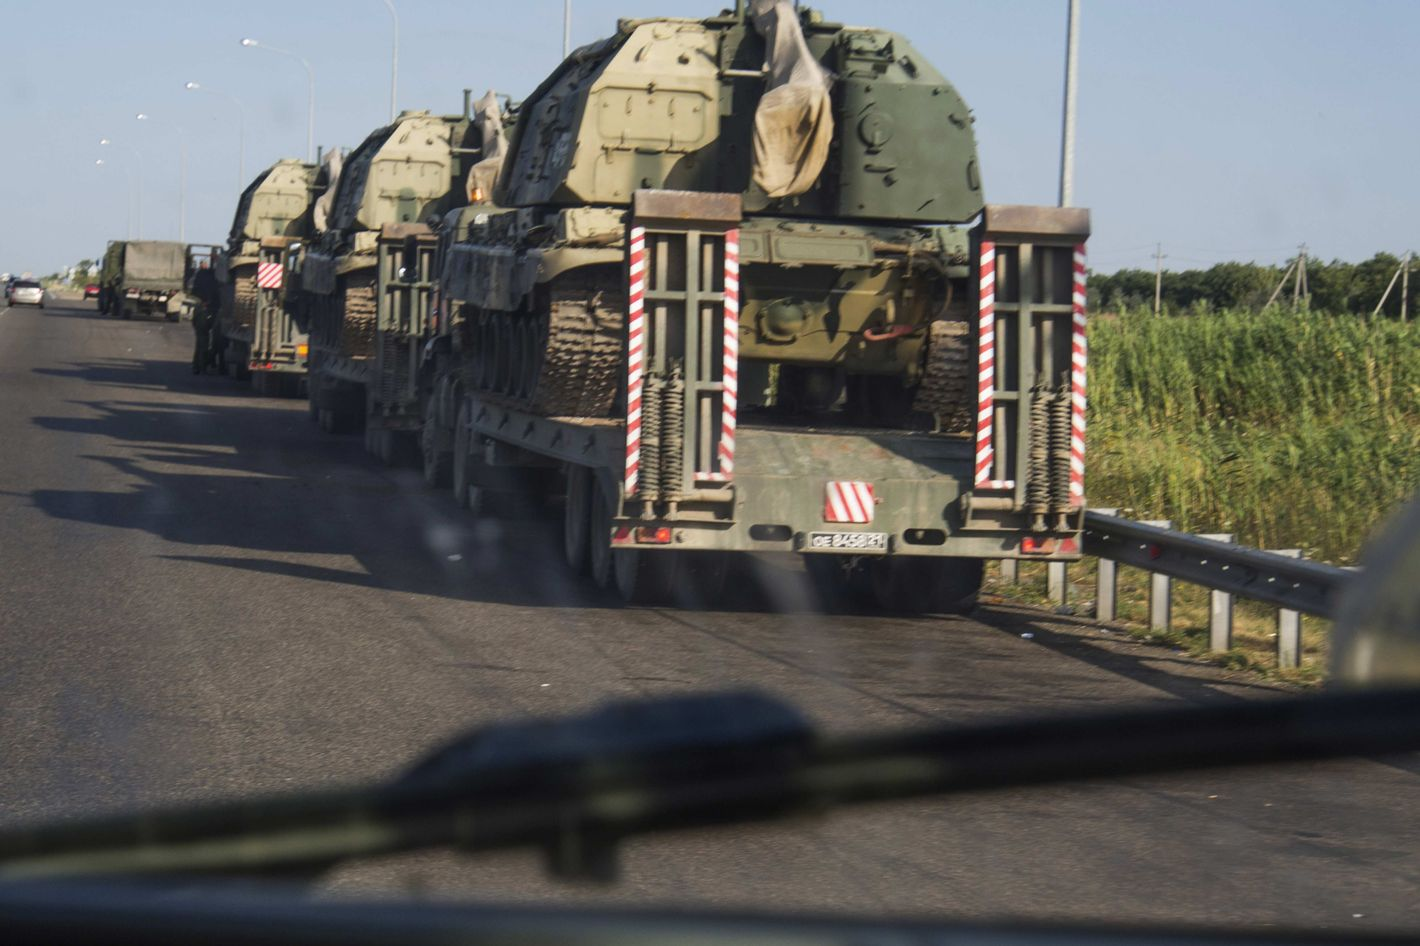 Column of tractors, self-propelled artillery transporting on the highway M 29 in the area of village Kursavka, Stavropol Krai, Russia. Each gun weighs 57 tons. According to the Russian soldiers are heading towards the Russian-Ukrainian border. Accompanied by armored vehicles just one driver.